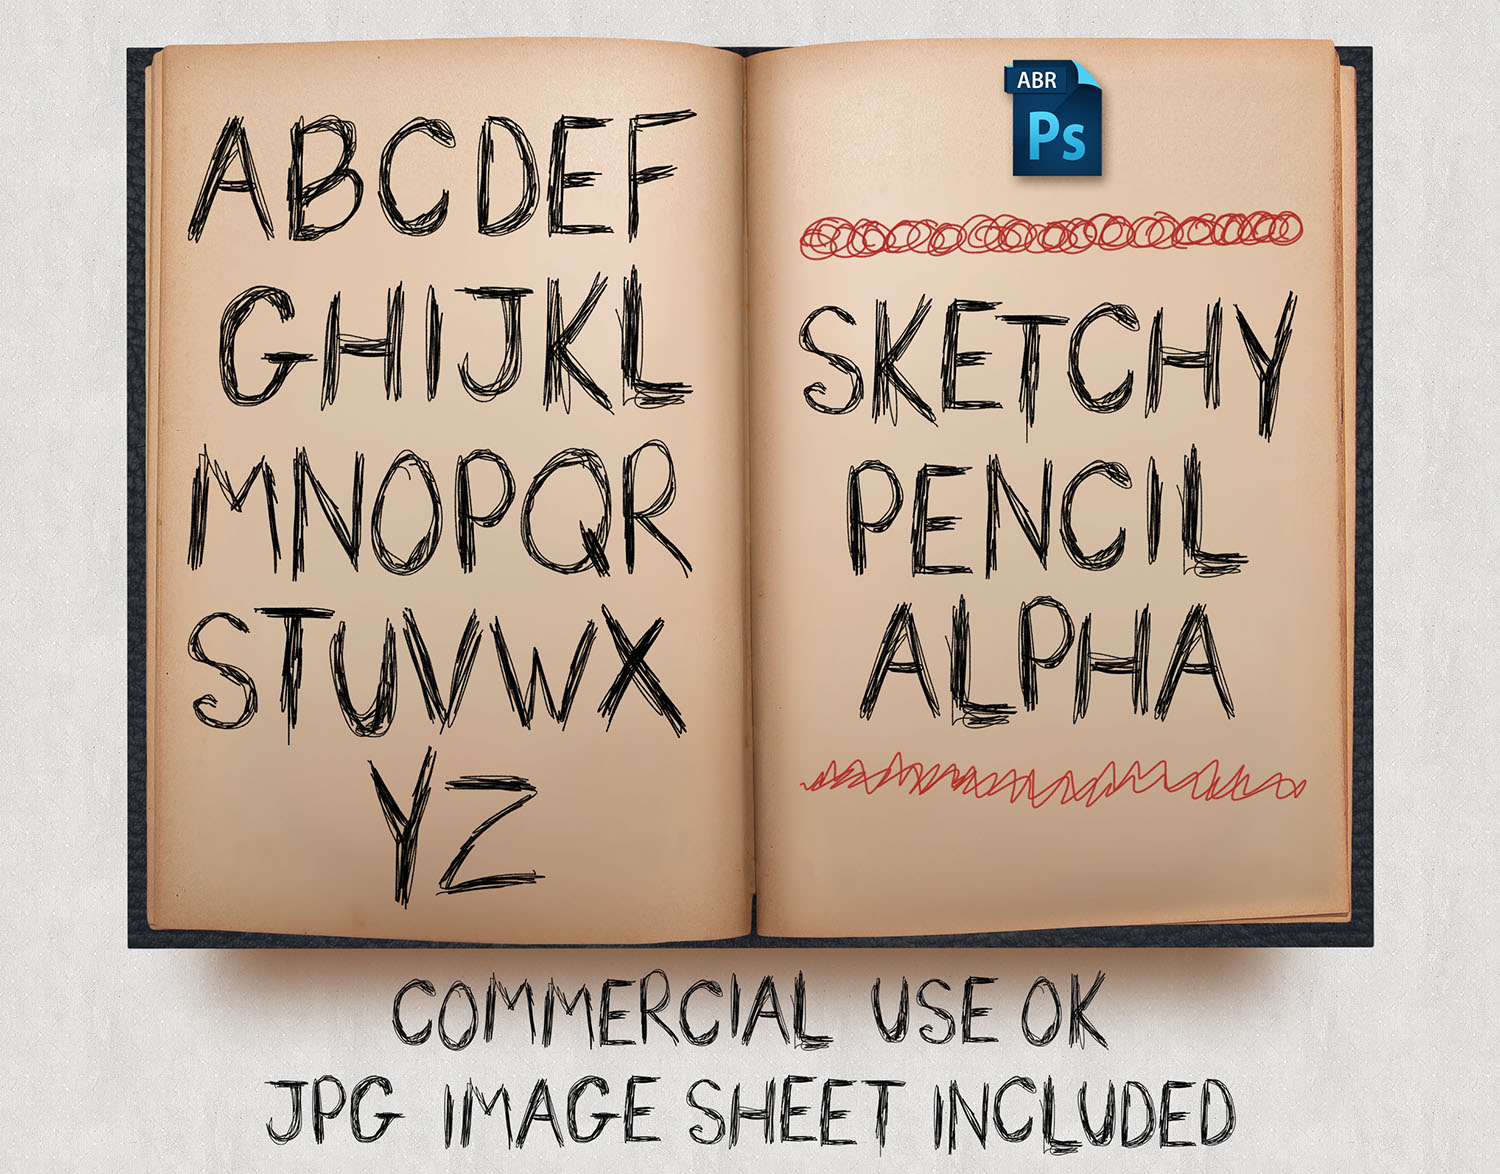 PS Brushes: Sketchy Pencil Alpha by HGGraphicDesigns